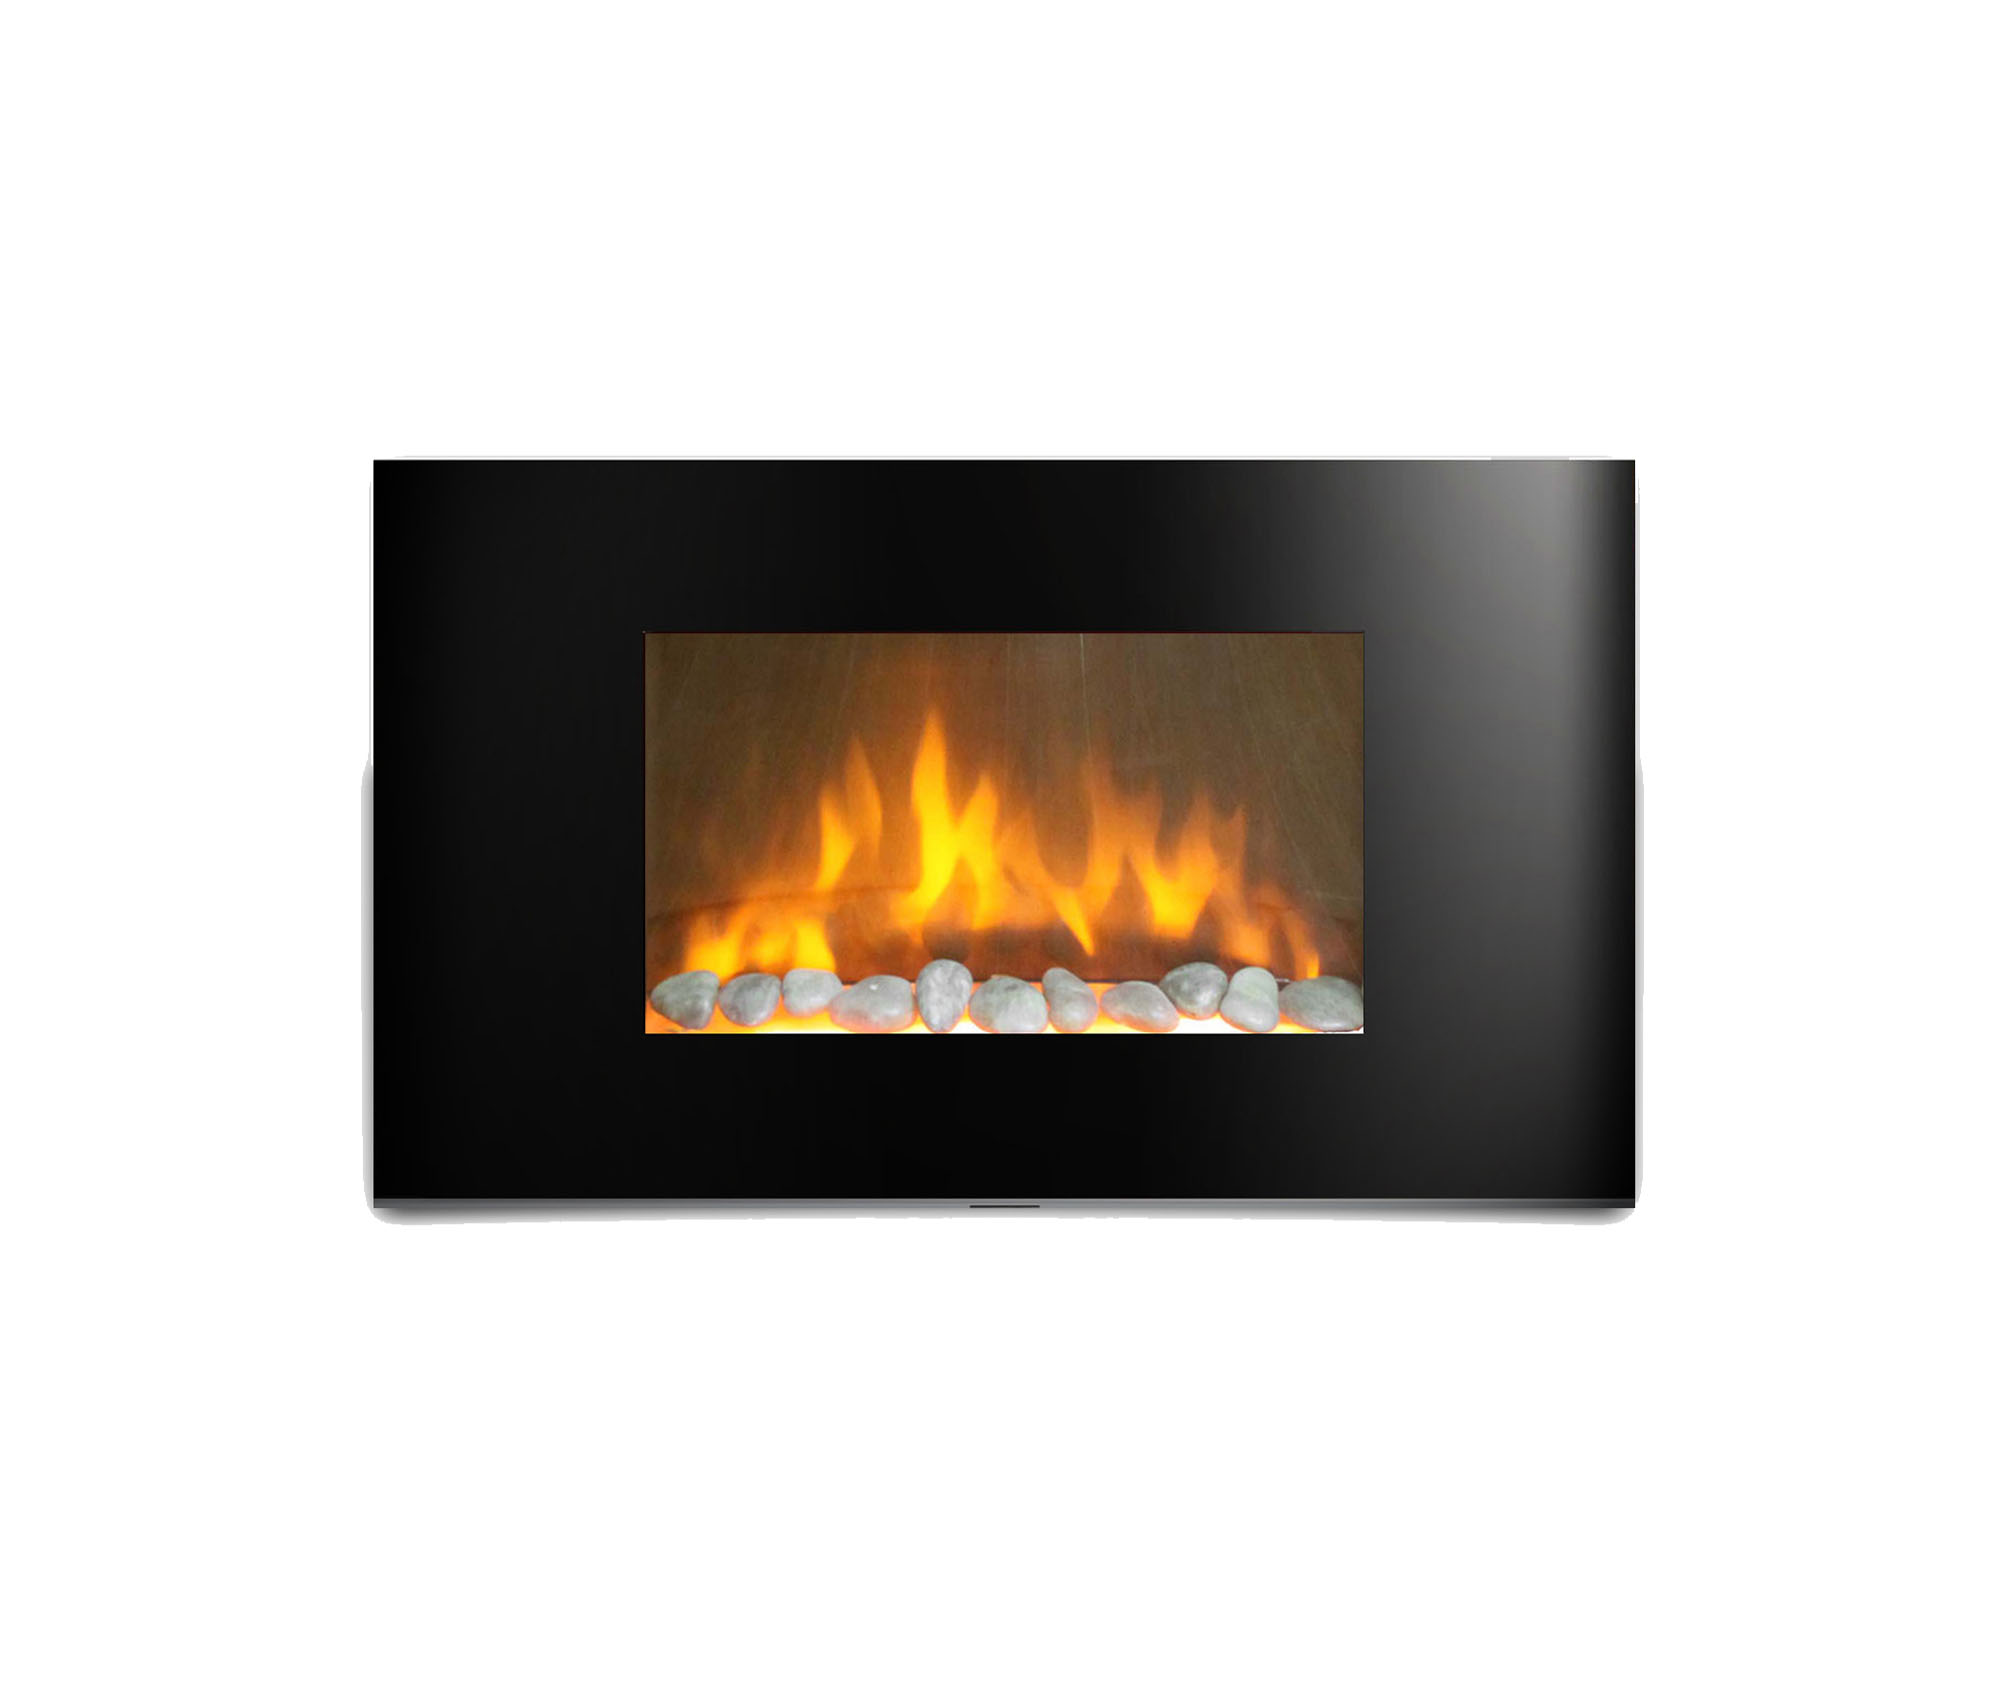 Ambionair flame led wall mounted fireplace ef 1510 bp for Fireplace wall